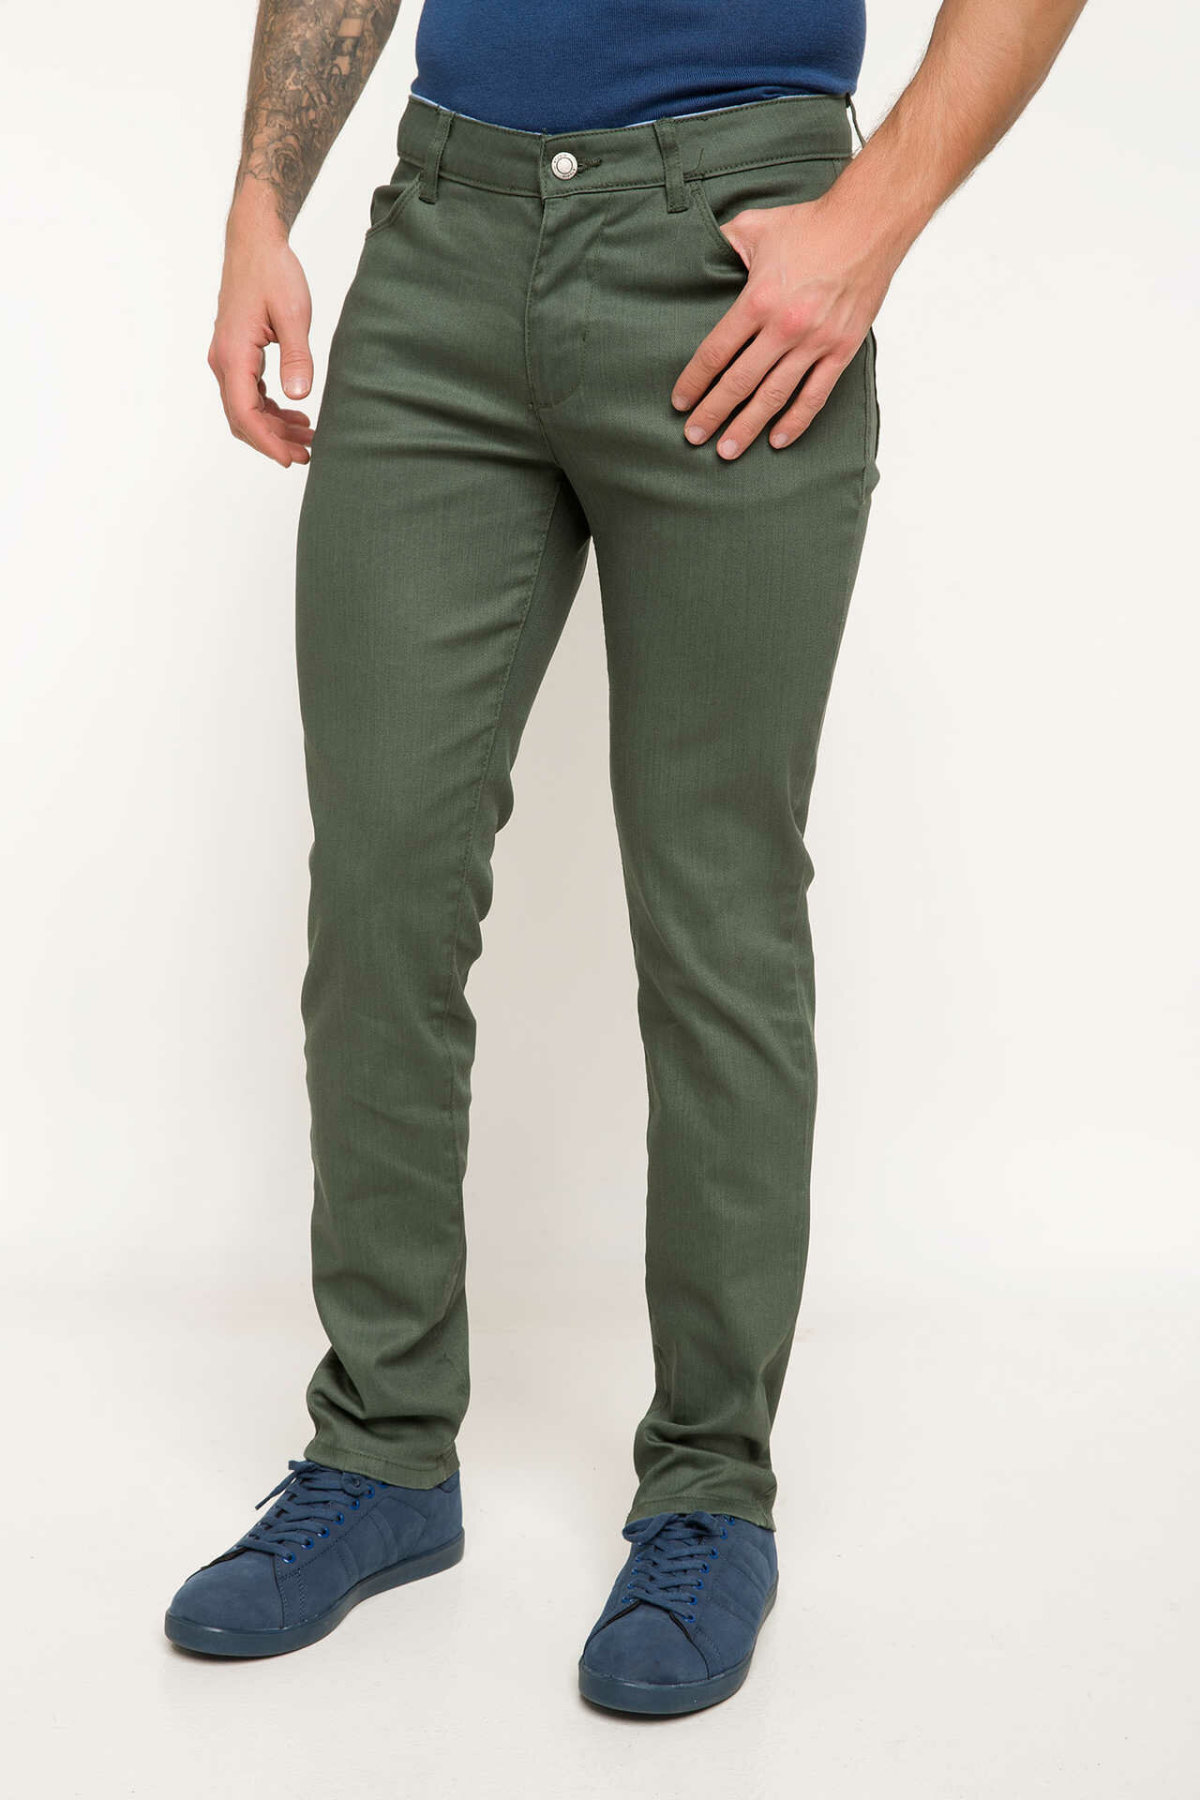 DeFacto Man Spring Green Long Pants Men Casual Mid-wasit Fit Slim Bottoms Male Smart Casual Trousers-I5157AZ18SP